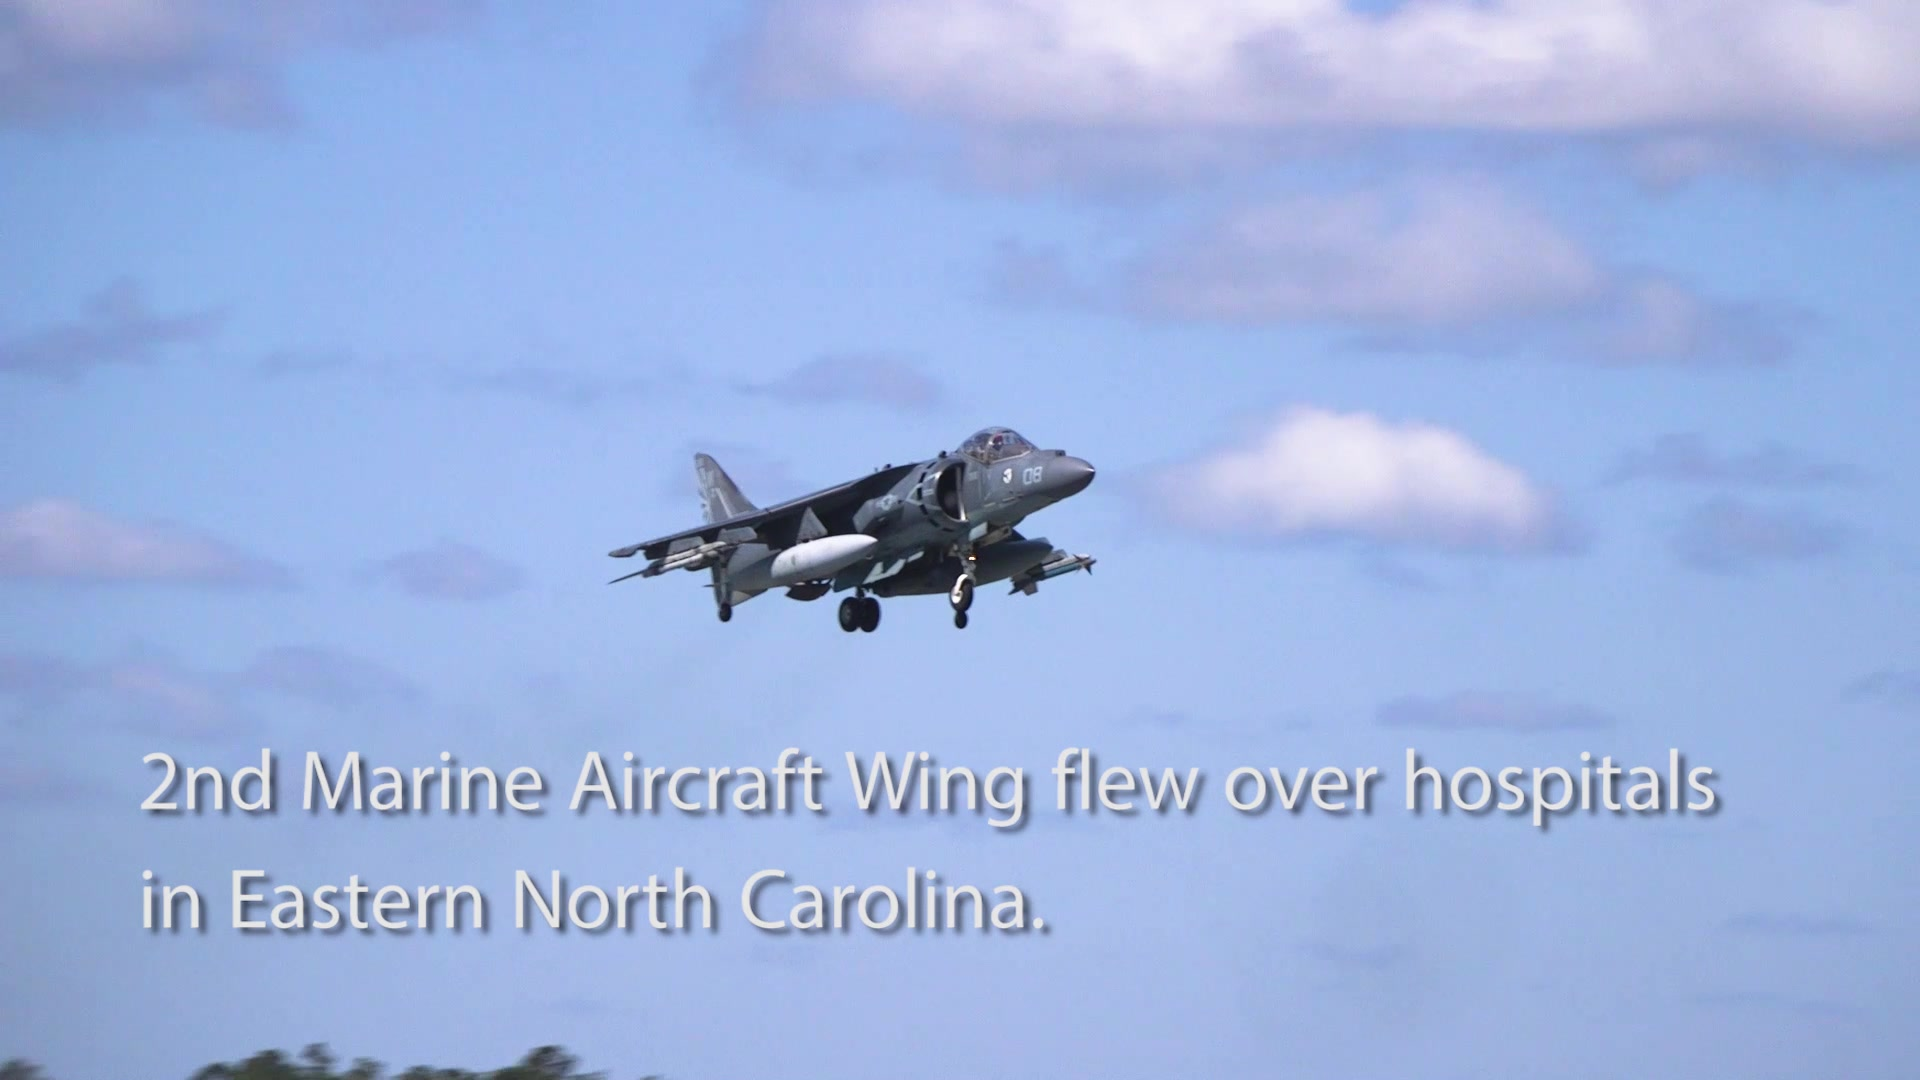 Four U.S. Marine Corps AV-8B Harriers with Marine Attack Squadron 223 performed a flyover across hospitals in Eastern North Carolina, May 7, 2020. The flyover showed continued support to those working on the front lines in the fight against COVID-19. (U.S. Marine Corps video by Cpl. Damaris Arias)